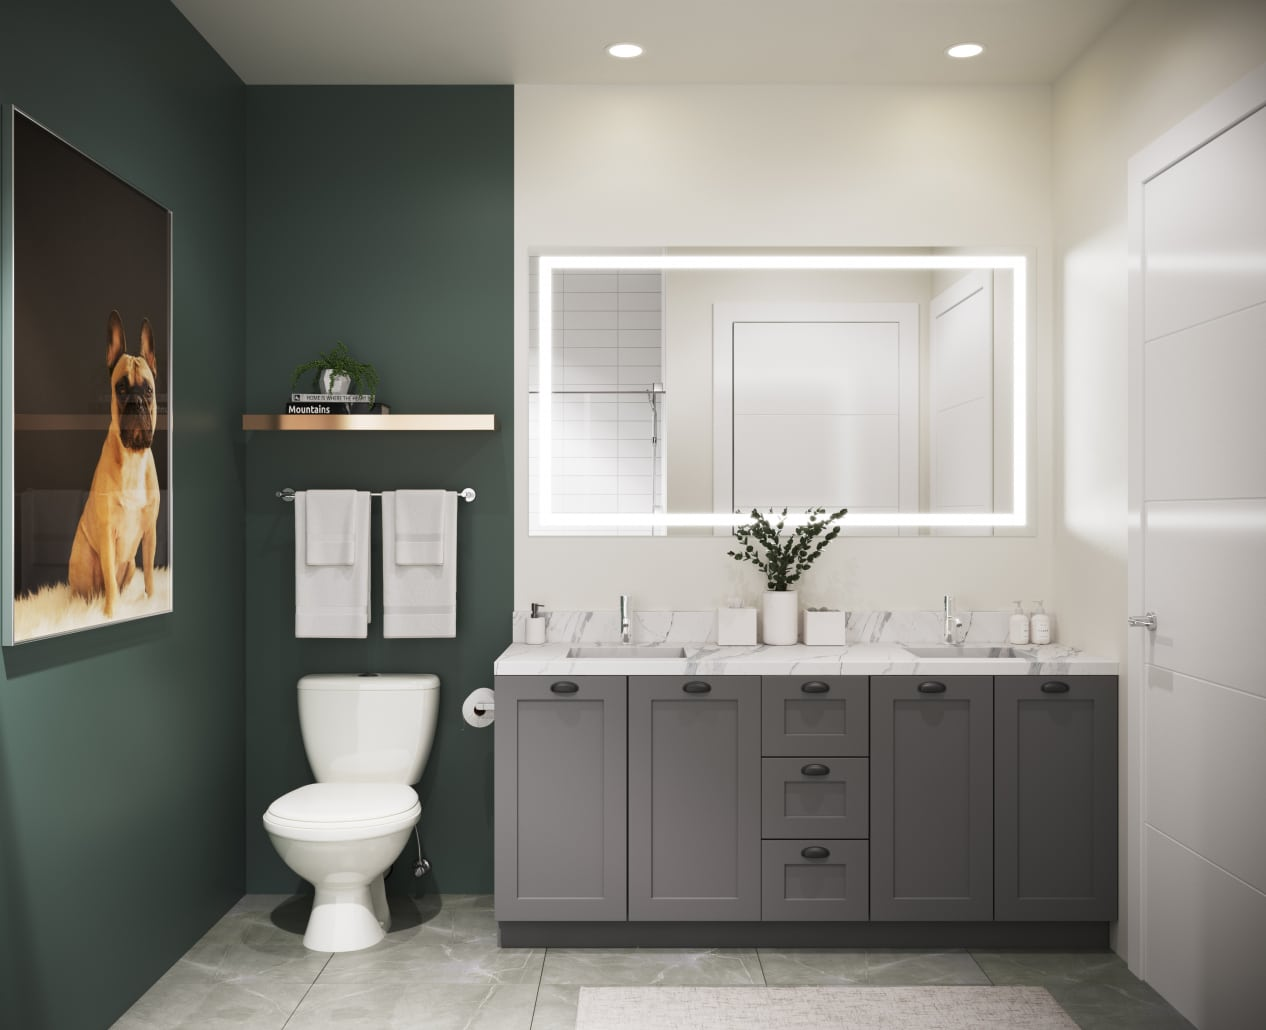 3D Rendering Interior Bathroom for Elan Halycon in Alpharetta, Georgia